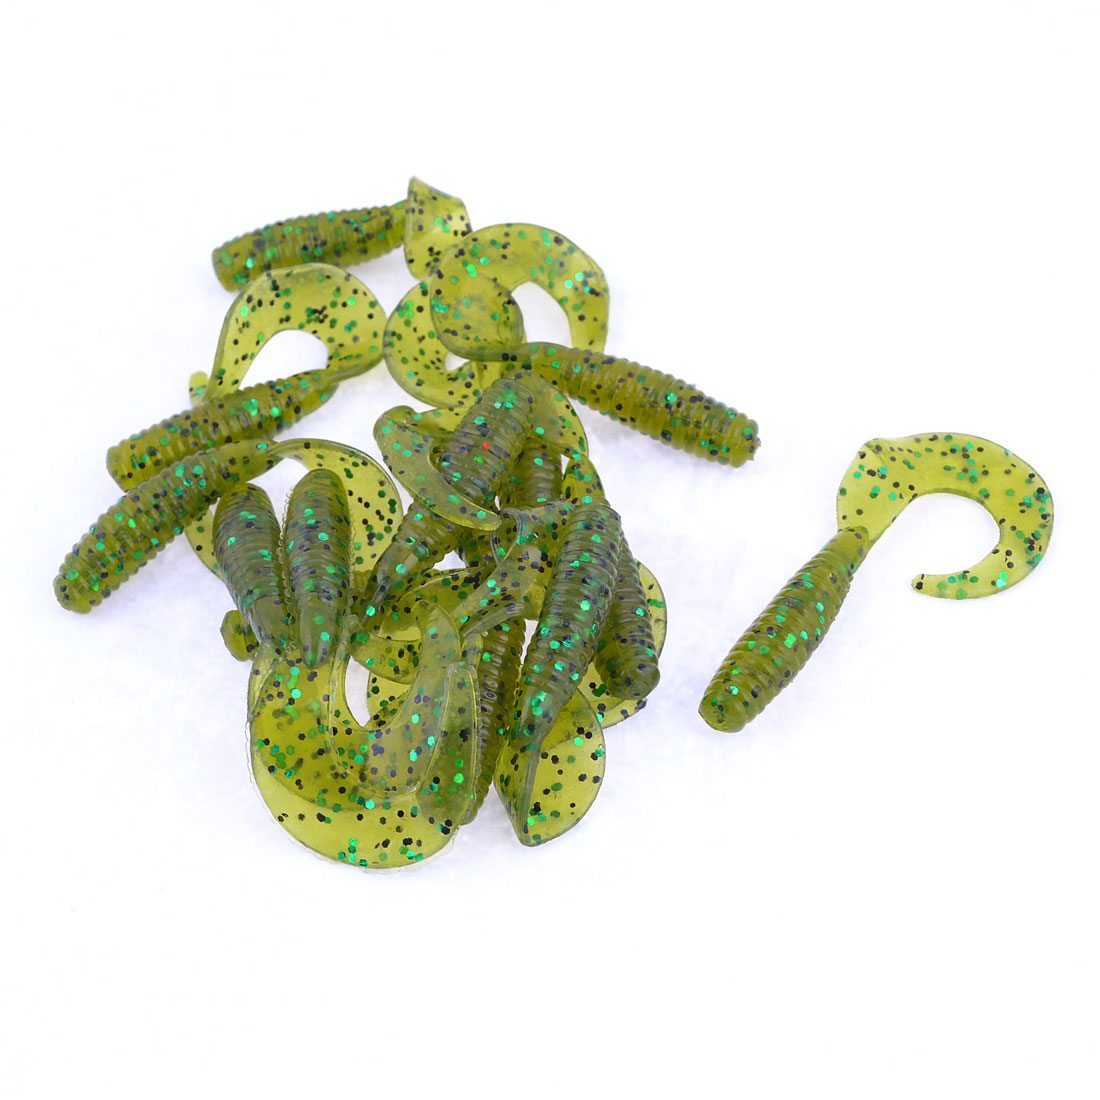 Glitter Decor Worm Design Silicone Fishing Soft Lures Baits Yelllow 14 Pcs